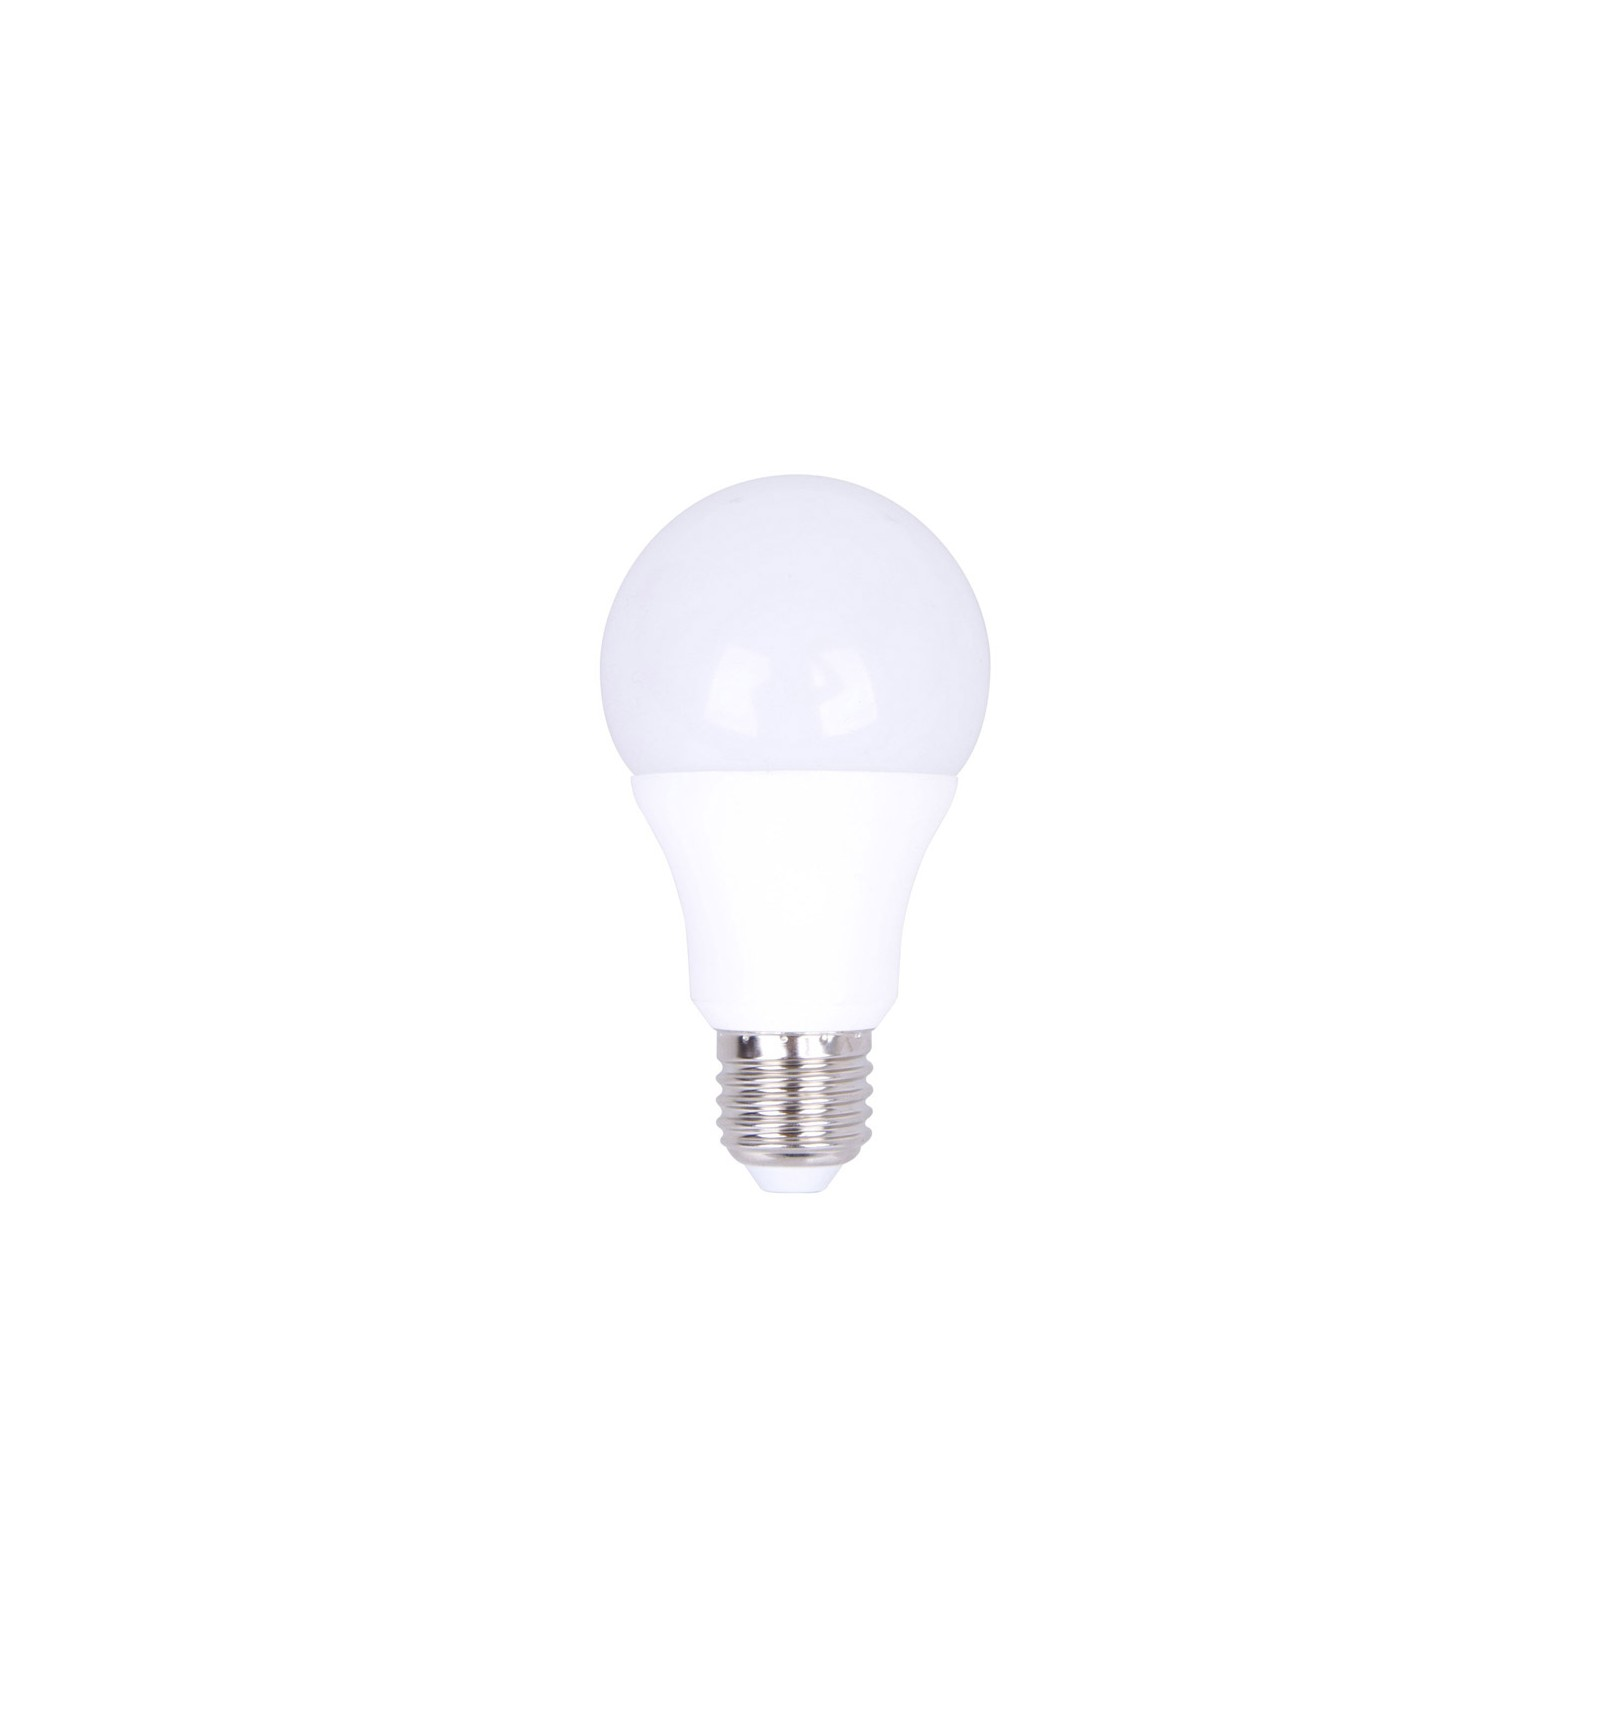 Ampoule 5w Led E27 10w White Neutral 4500k Bulb